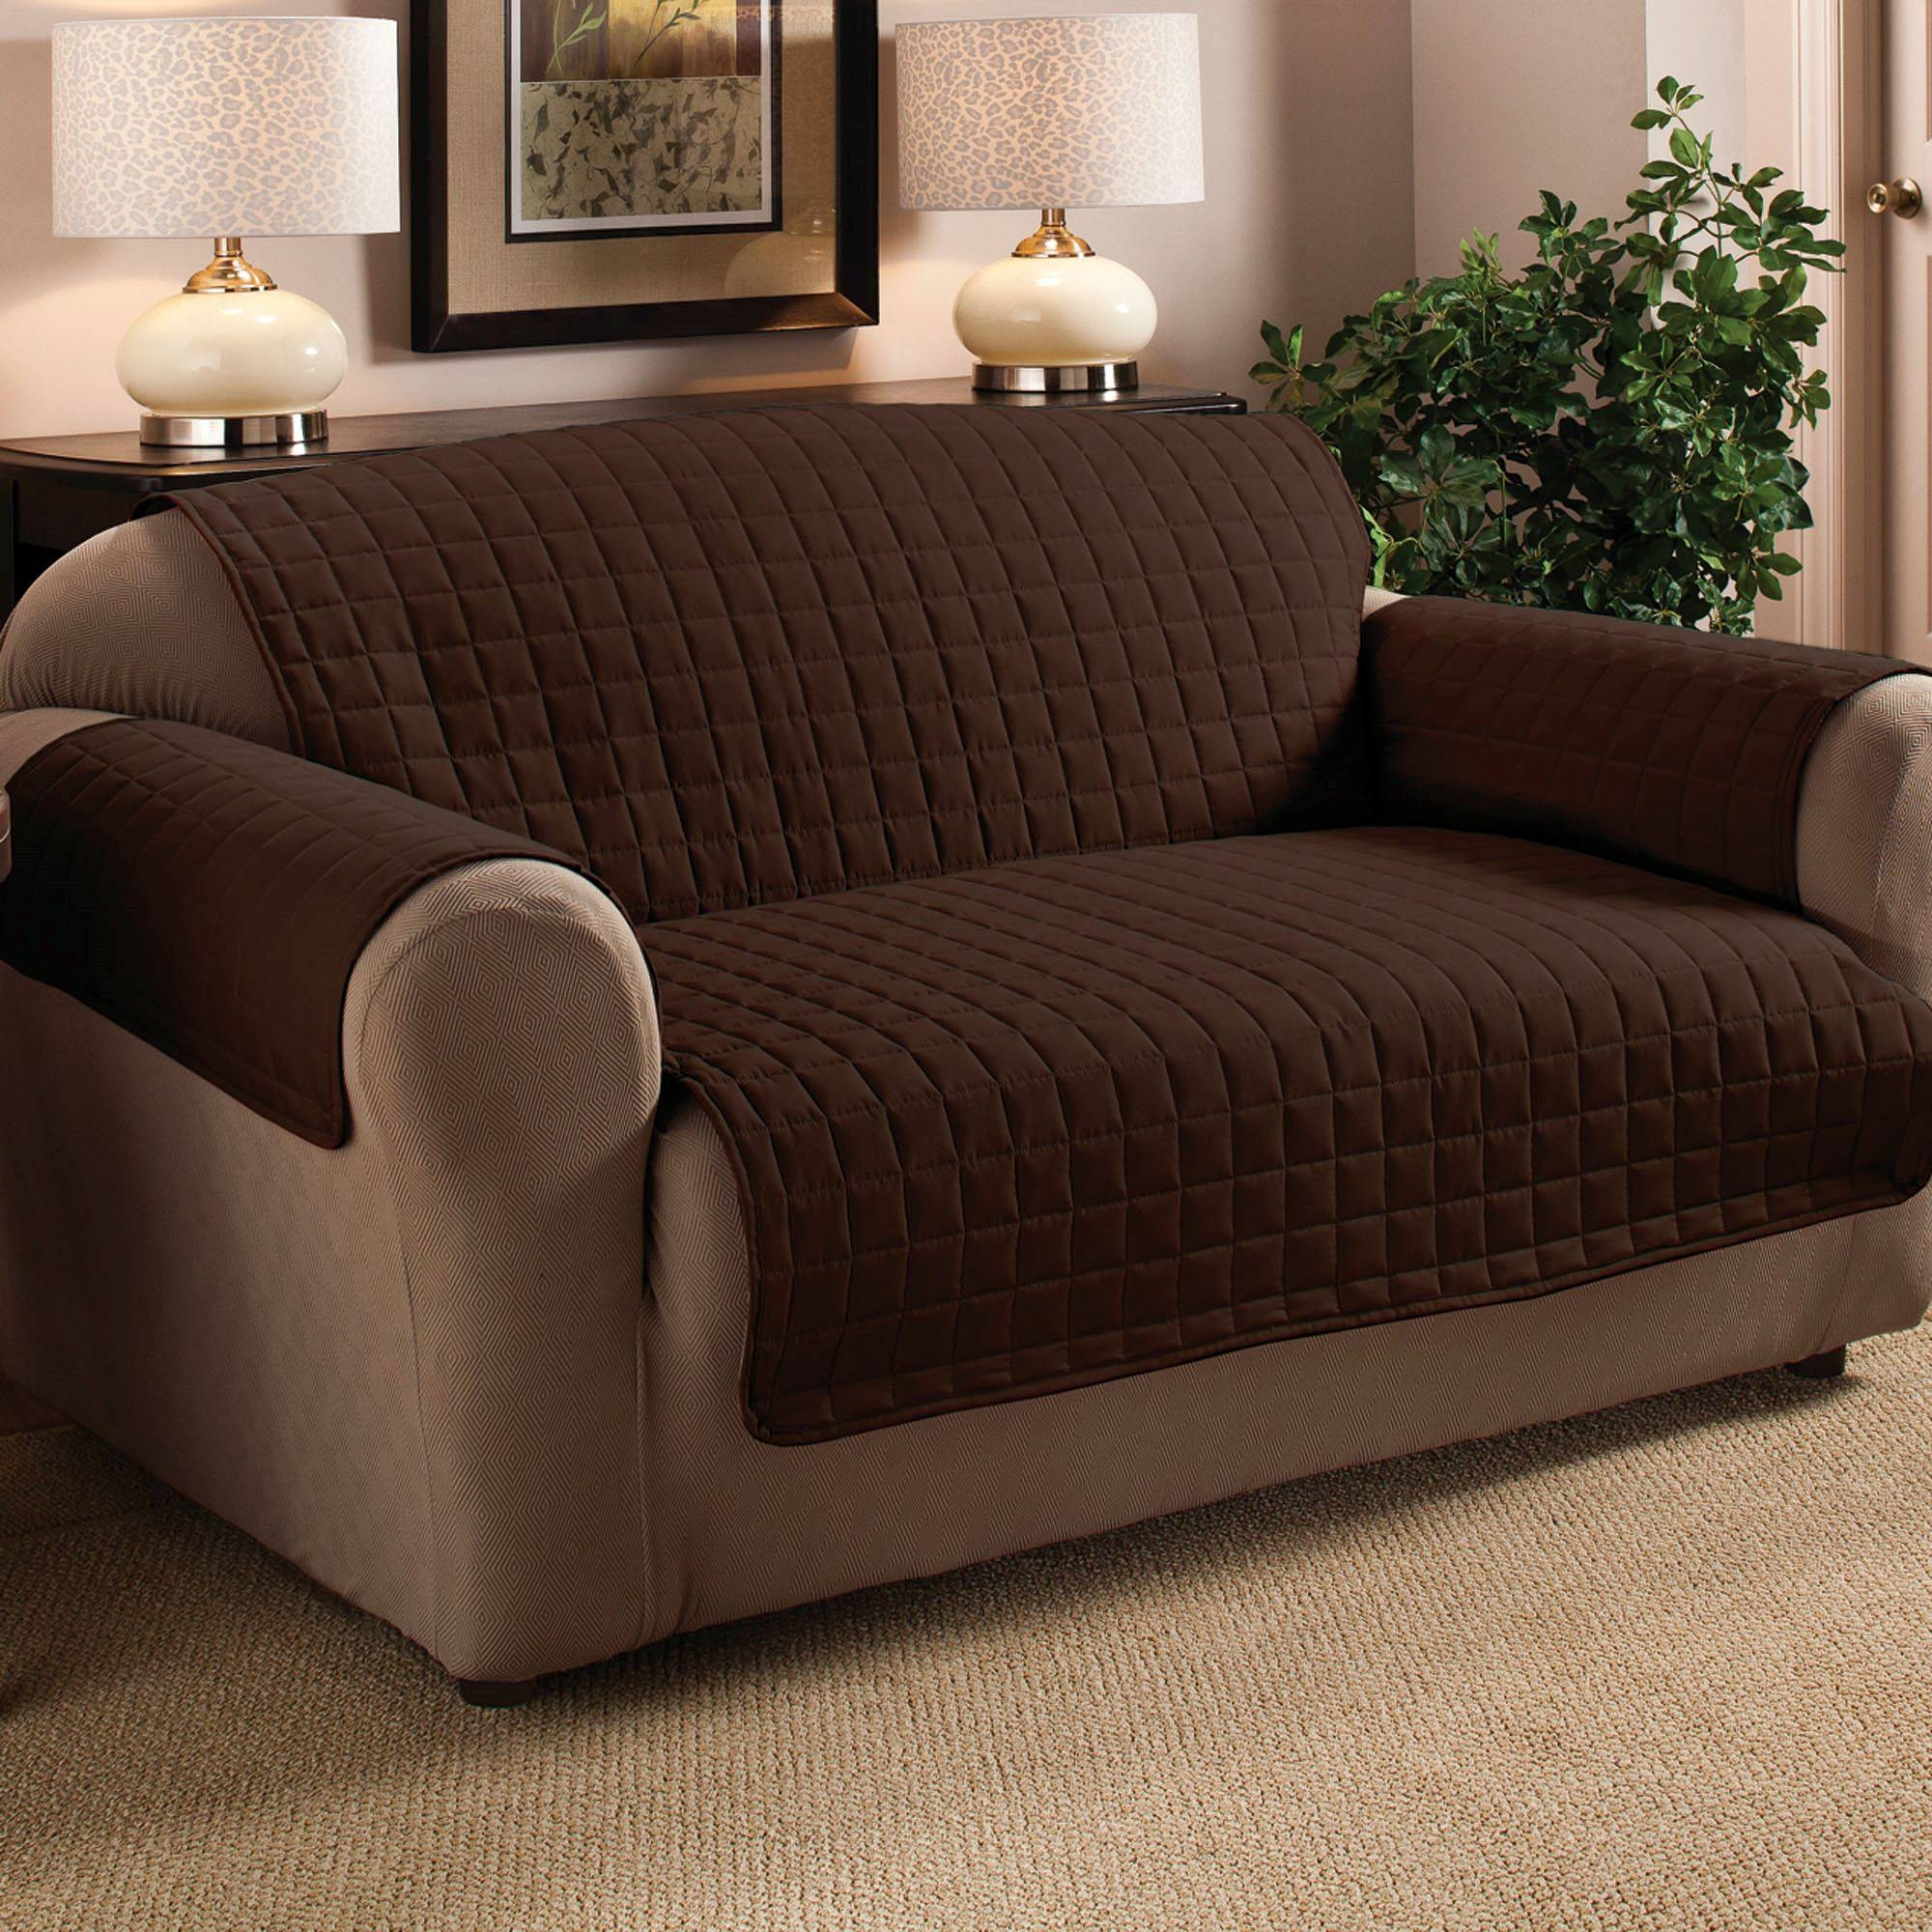 Sofas Center : Covers For Sofas And Chairs Sectional With inside Covers for Sofas and Chairs (Image 11 of 15)